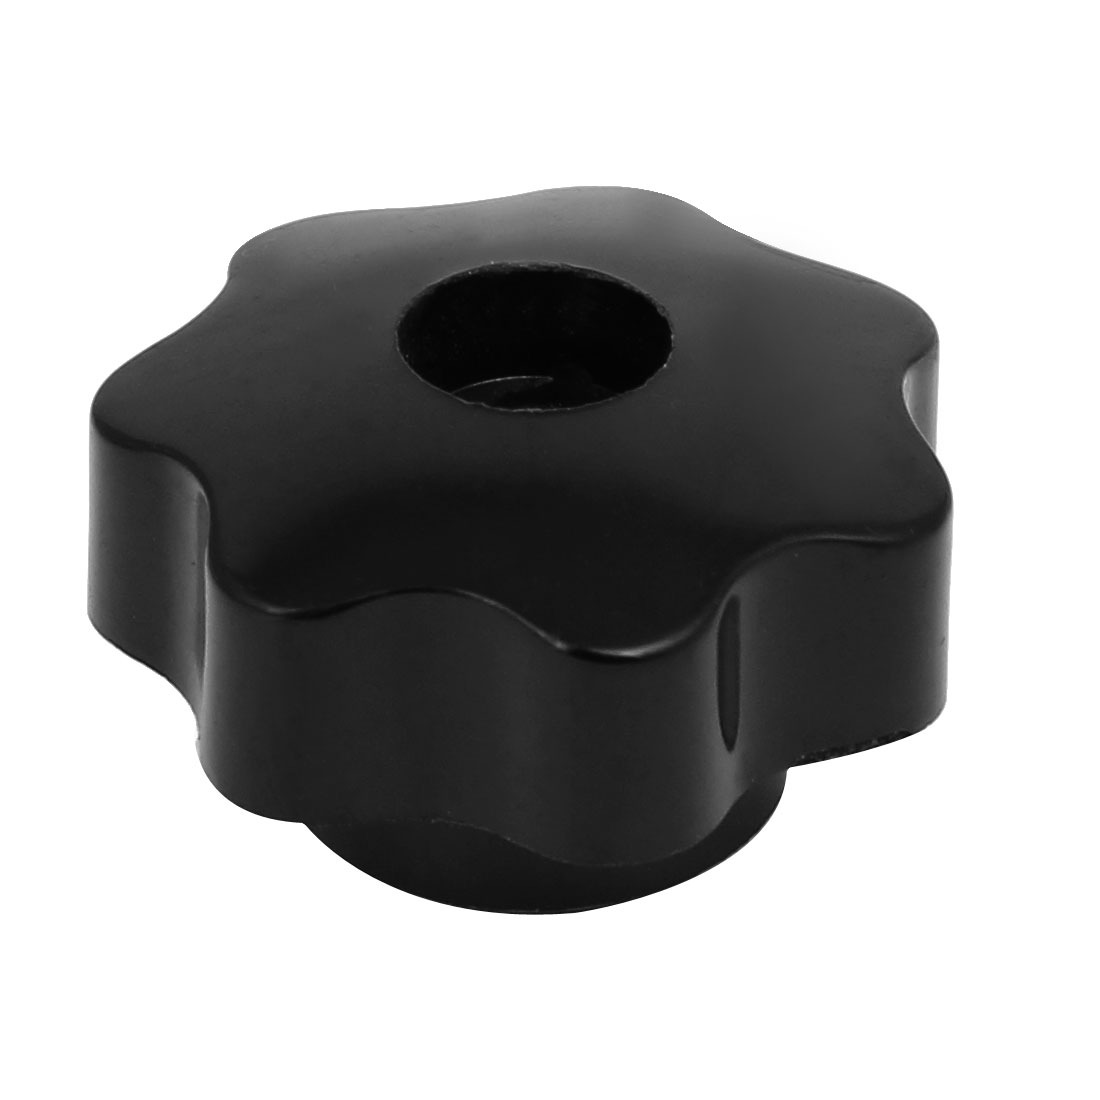 M6x40mm Plastic Seven Pointed Star Head Through Hole Machinery Clamping Knob